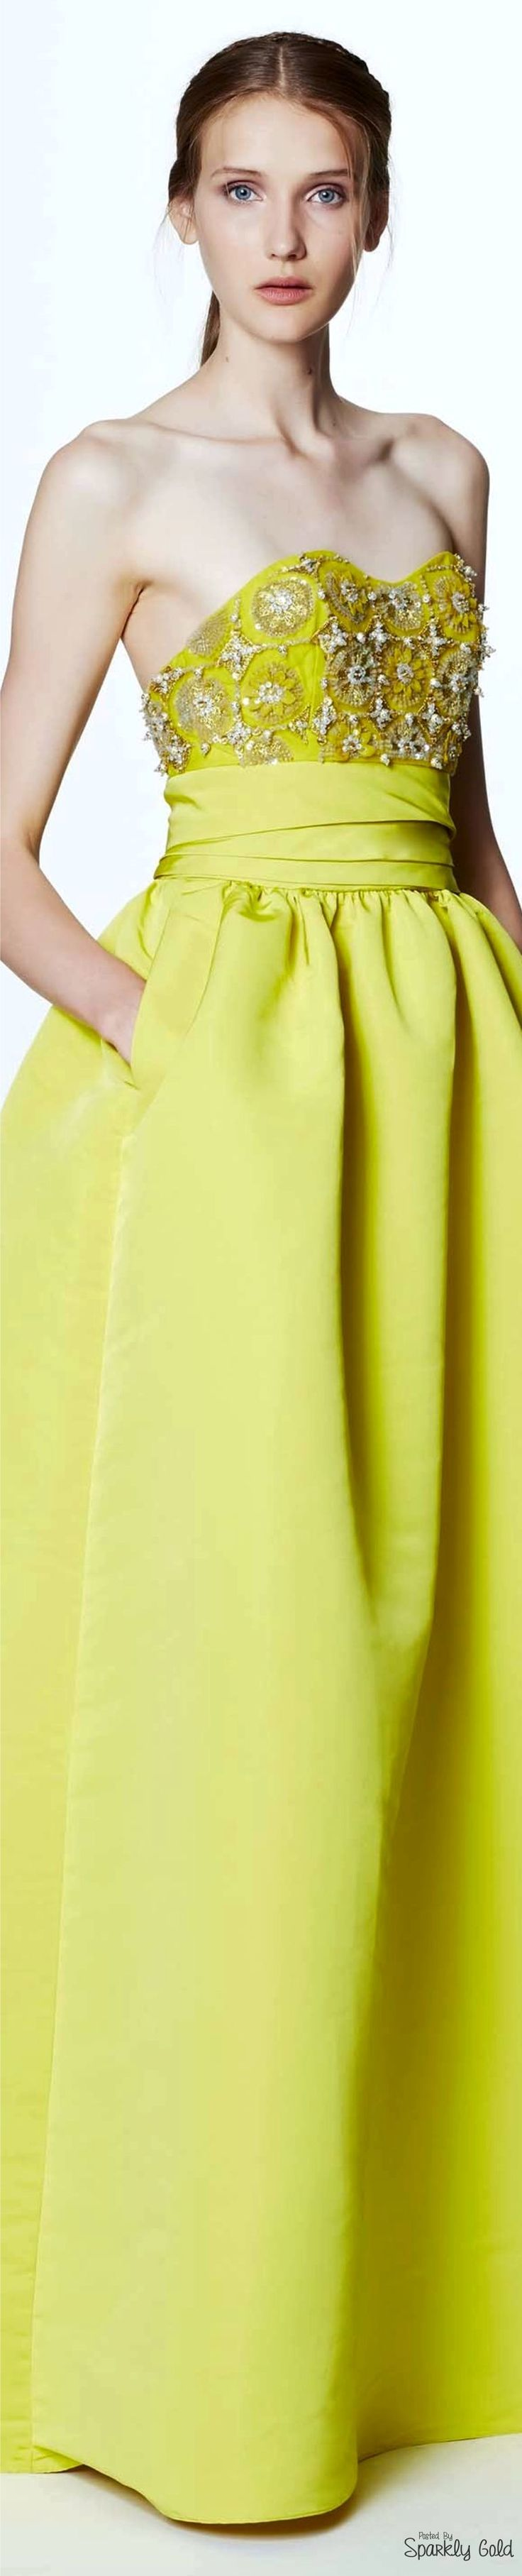 Marchesa notte resort yellow gowns dresses and skirts